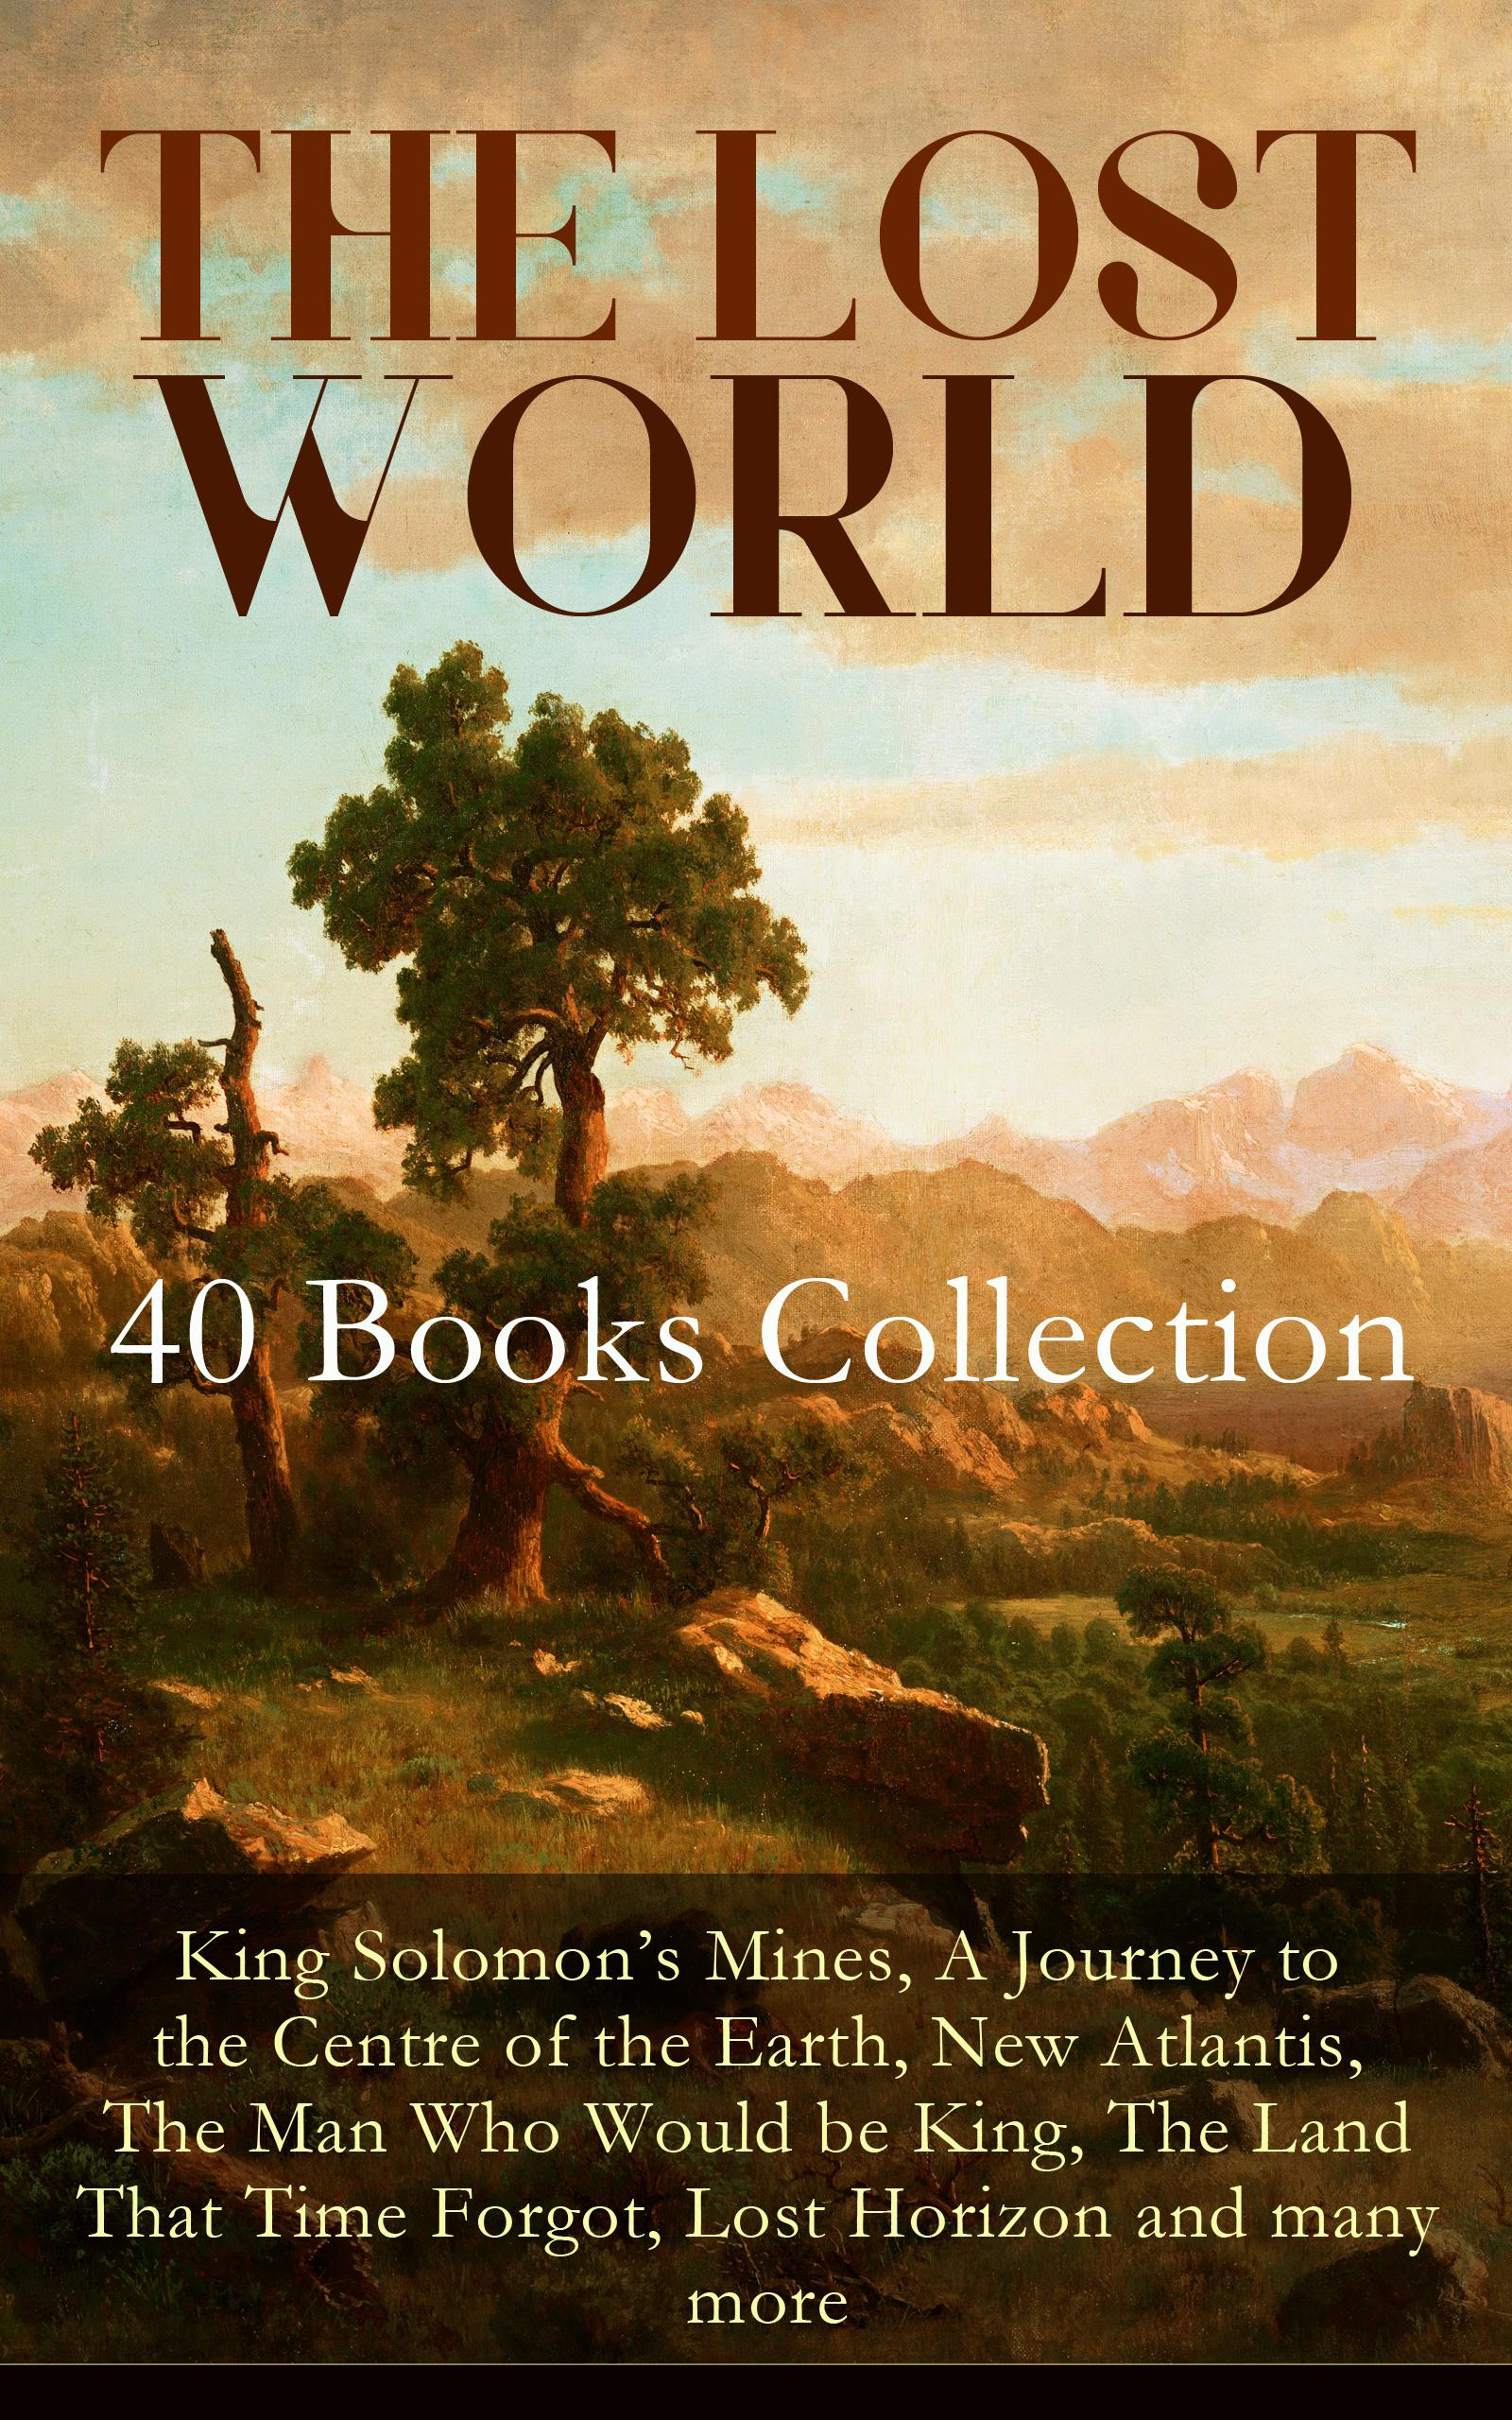 THE LOST WORLD - 40 Books Collection: King Solomon's Mines, A Journey to the Centre of the Earth, New Atlantis, The Man Who Would be King, The Land That Time Forgot, Lost Horizon and many more